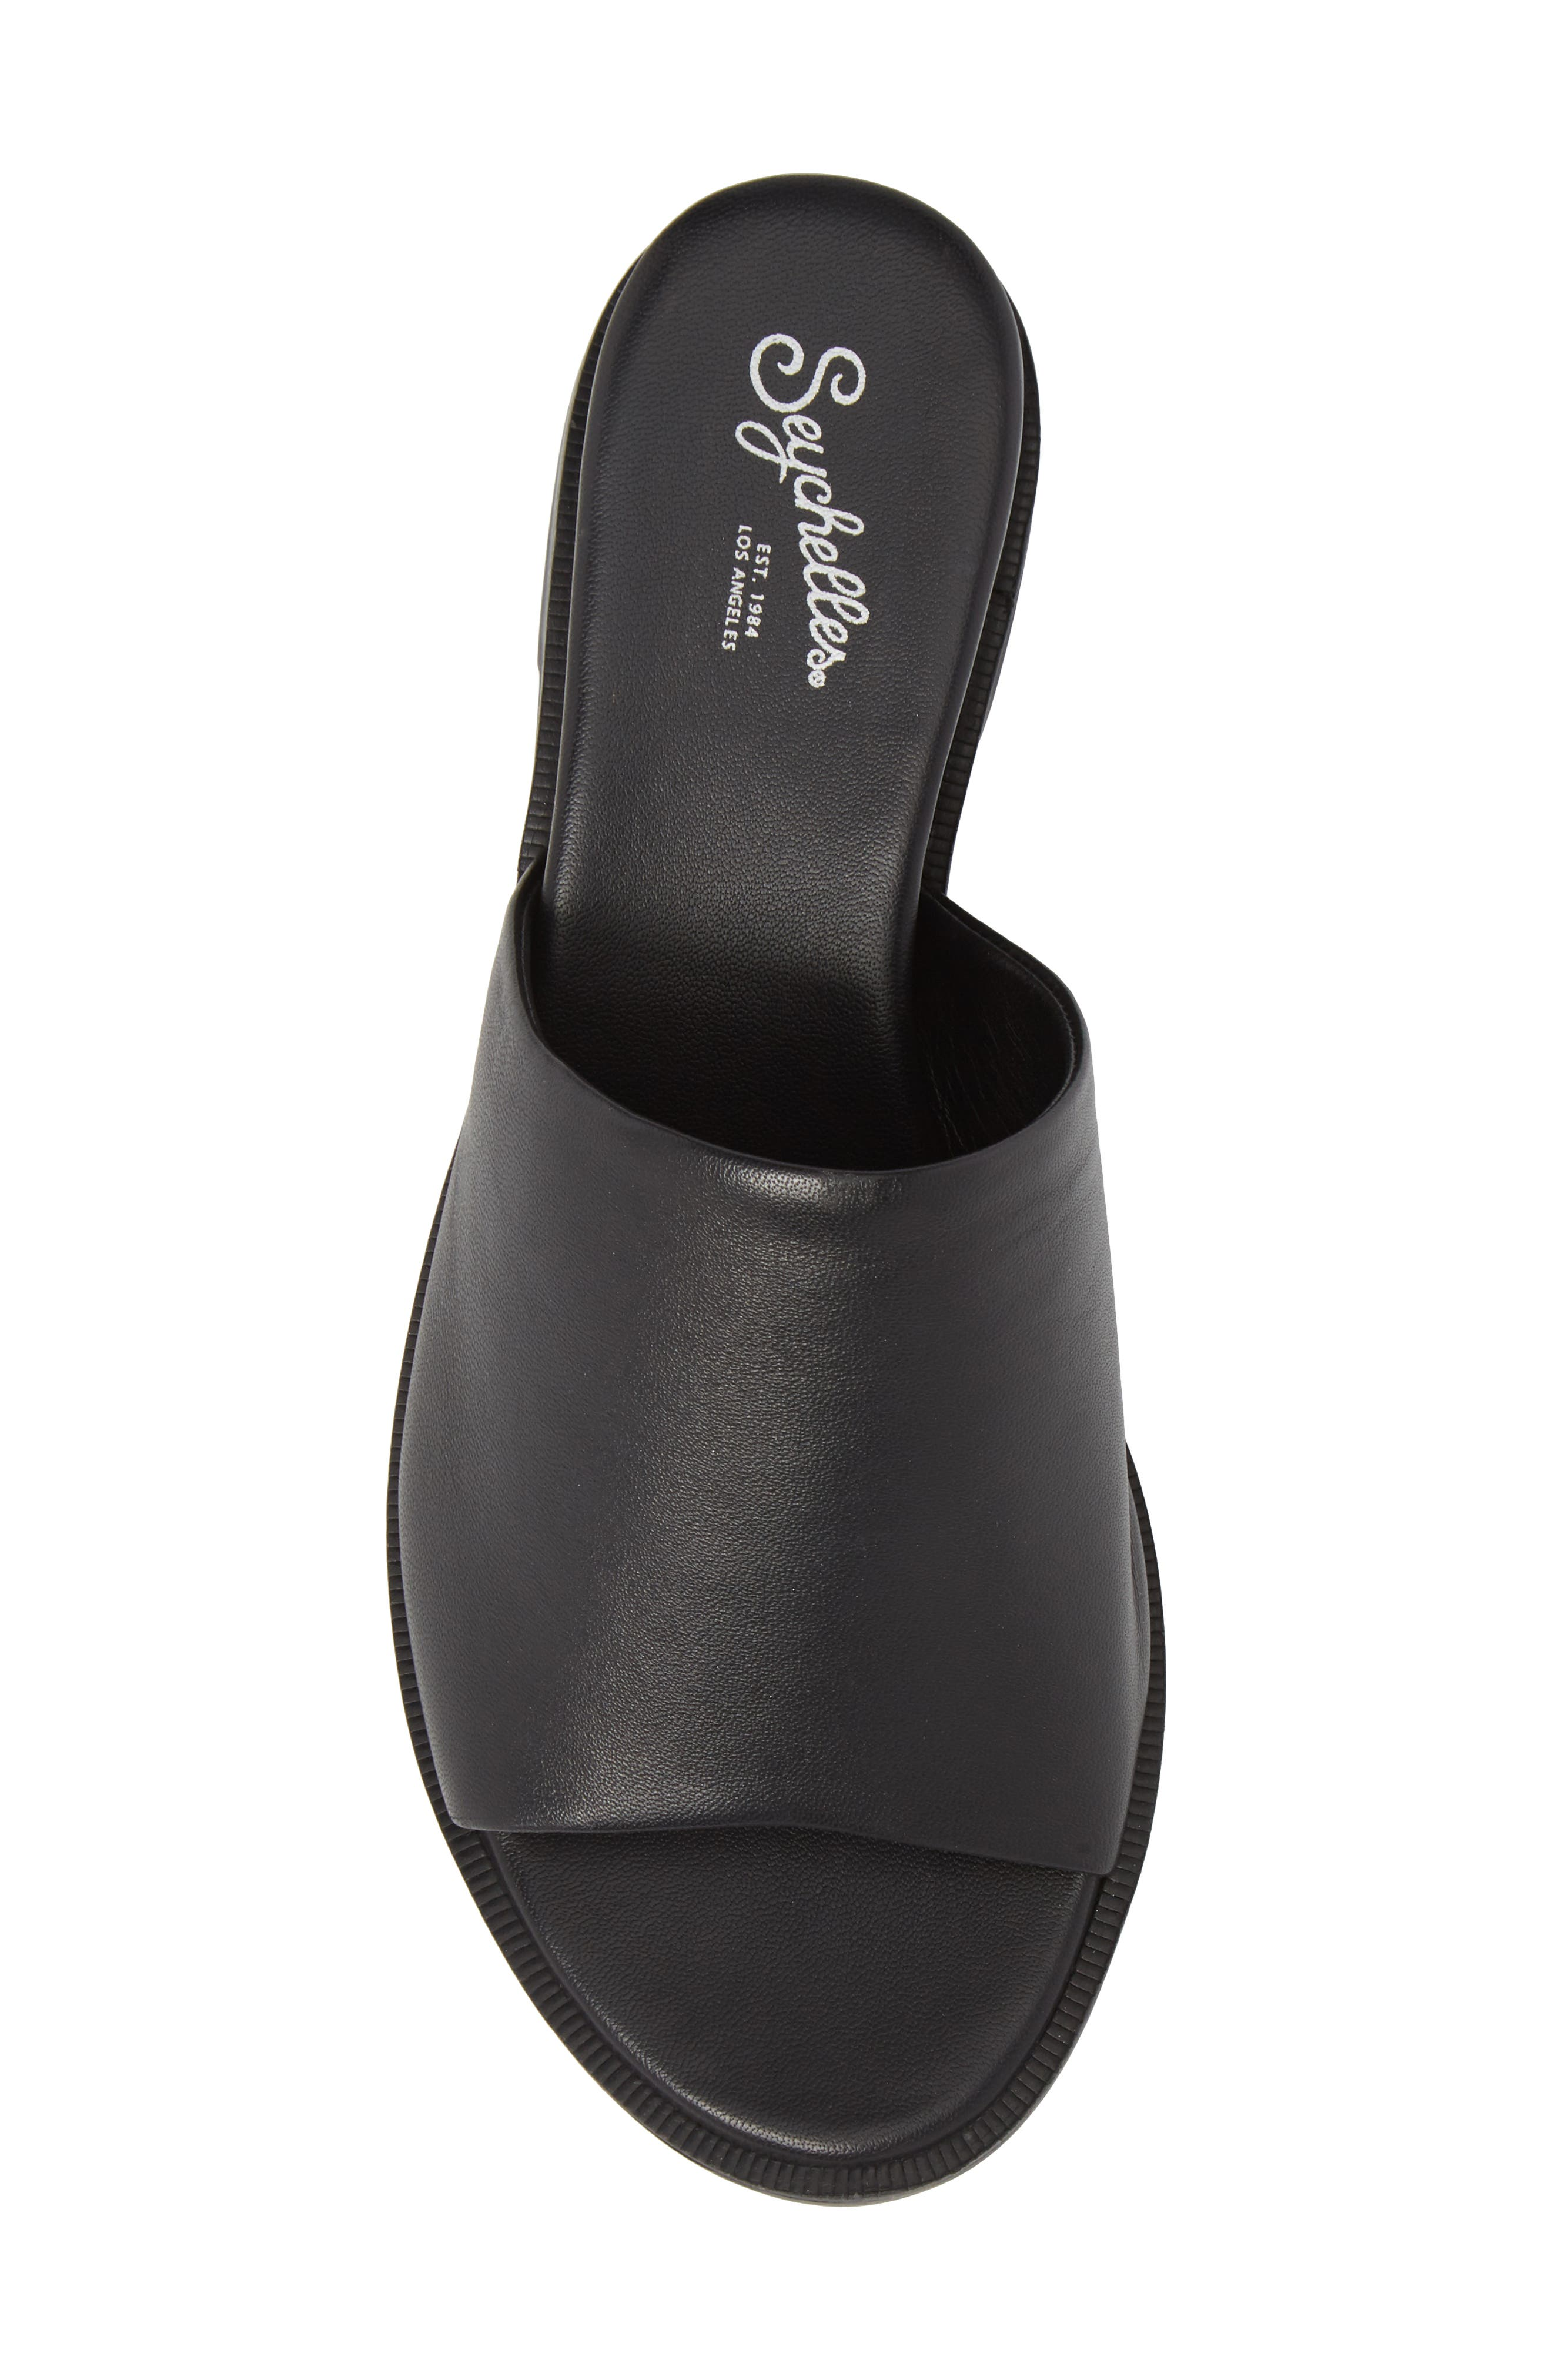 Relaxing Wedge Slide Sandal,                             Alternate thumbnail 5, color,                             001